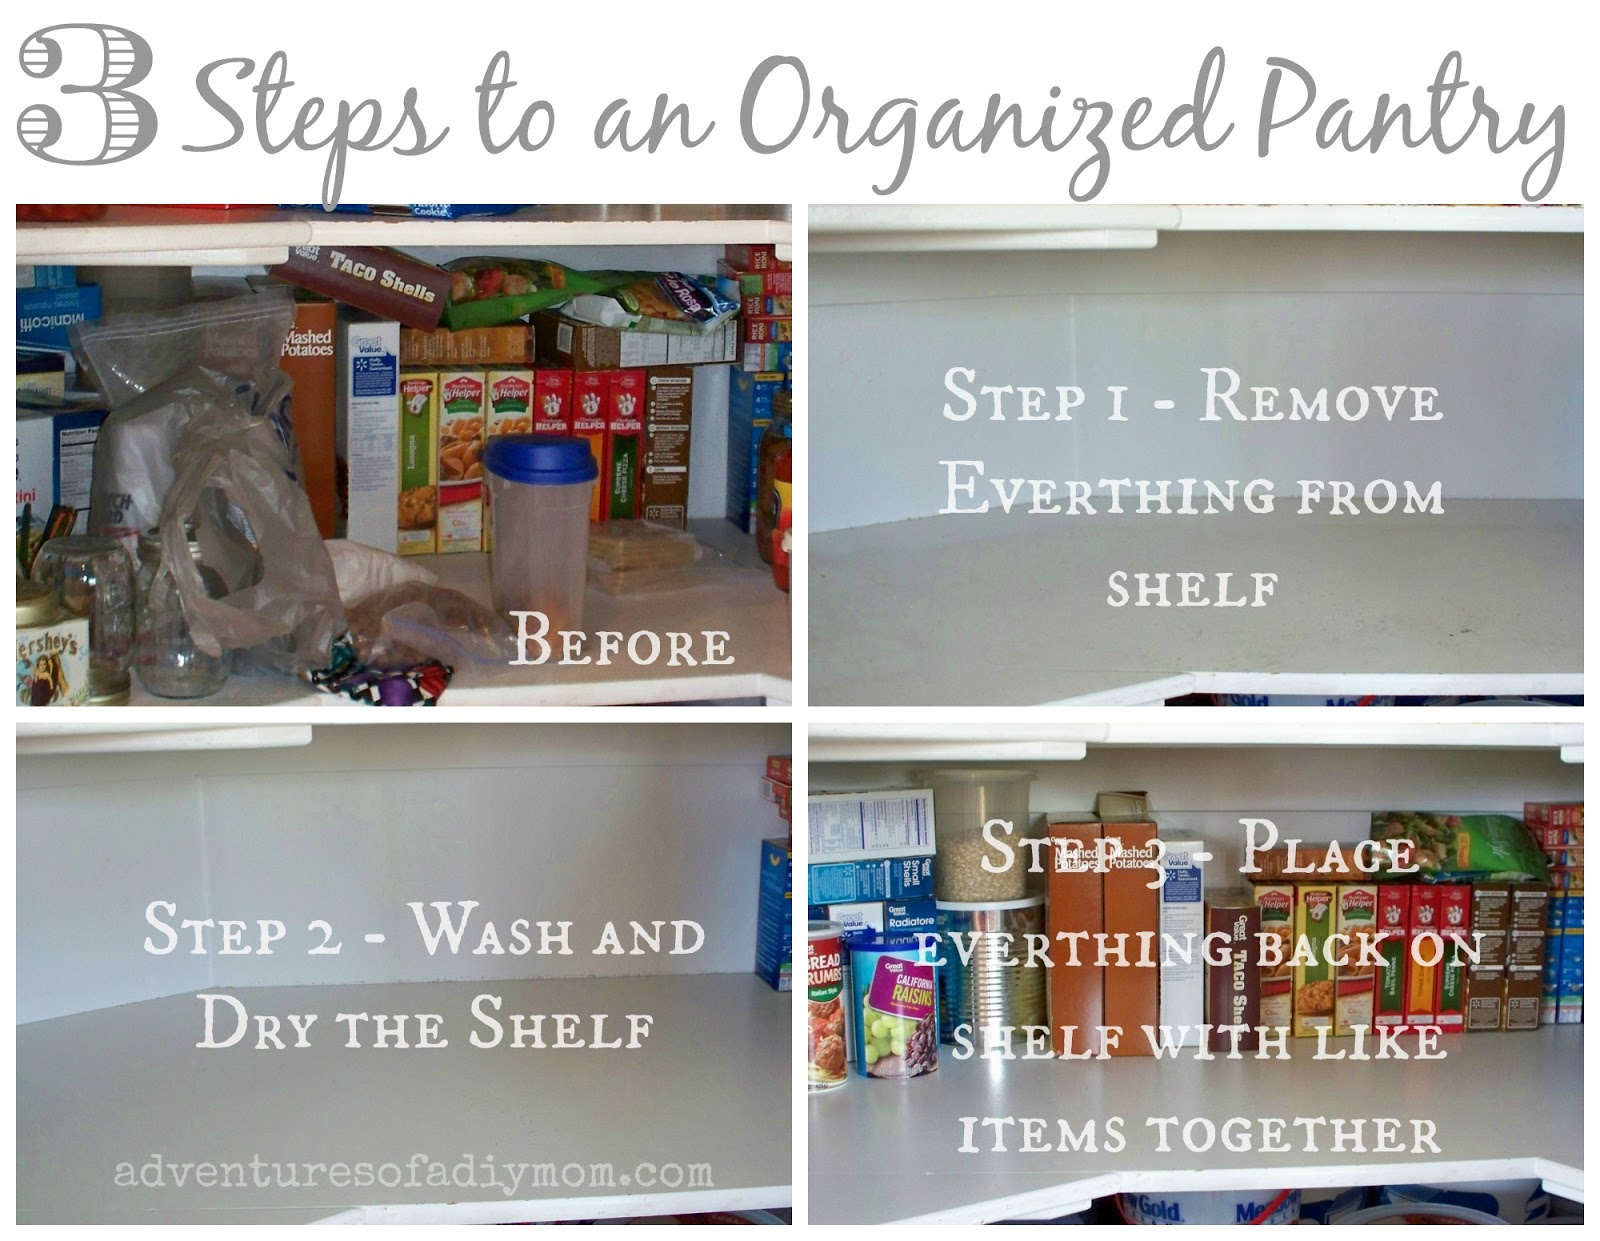 3 Steps to an Organized Pantry